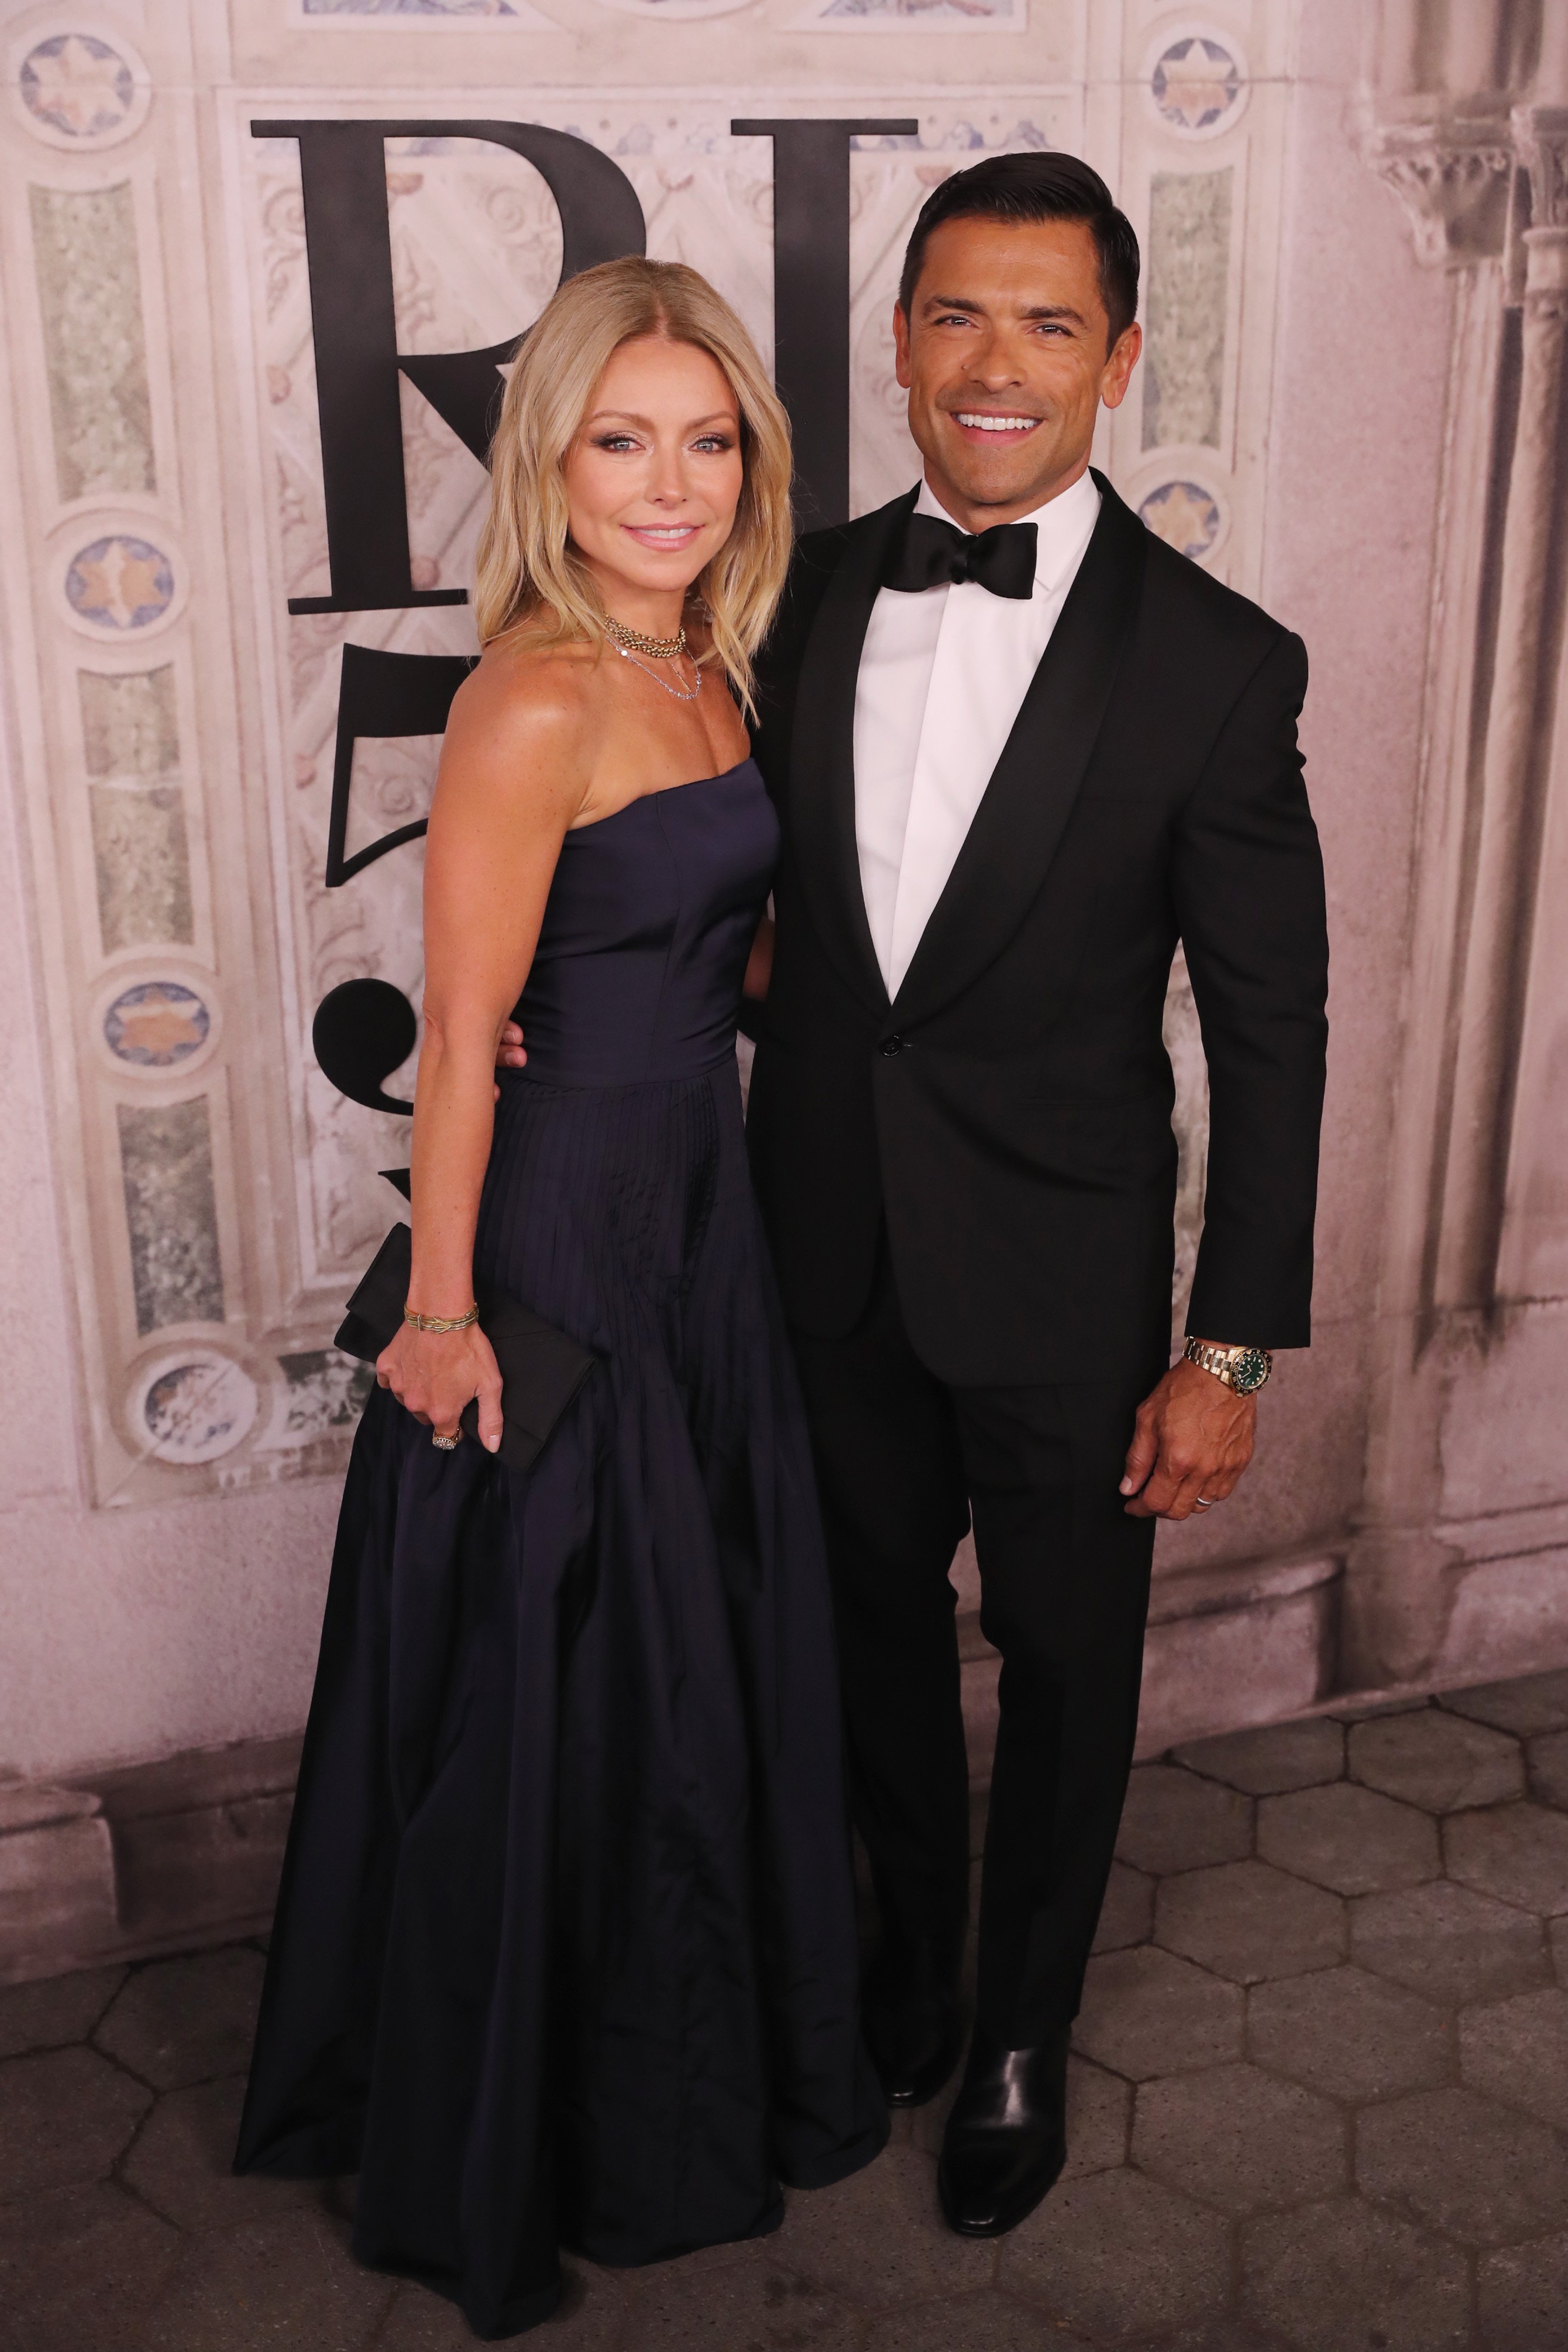 Kelly Ripa and Mark Consuelos attend the Ralph Lauren fashion show in New York City on September 7, 2018 | Photo: Getty Images